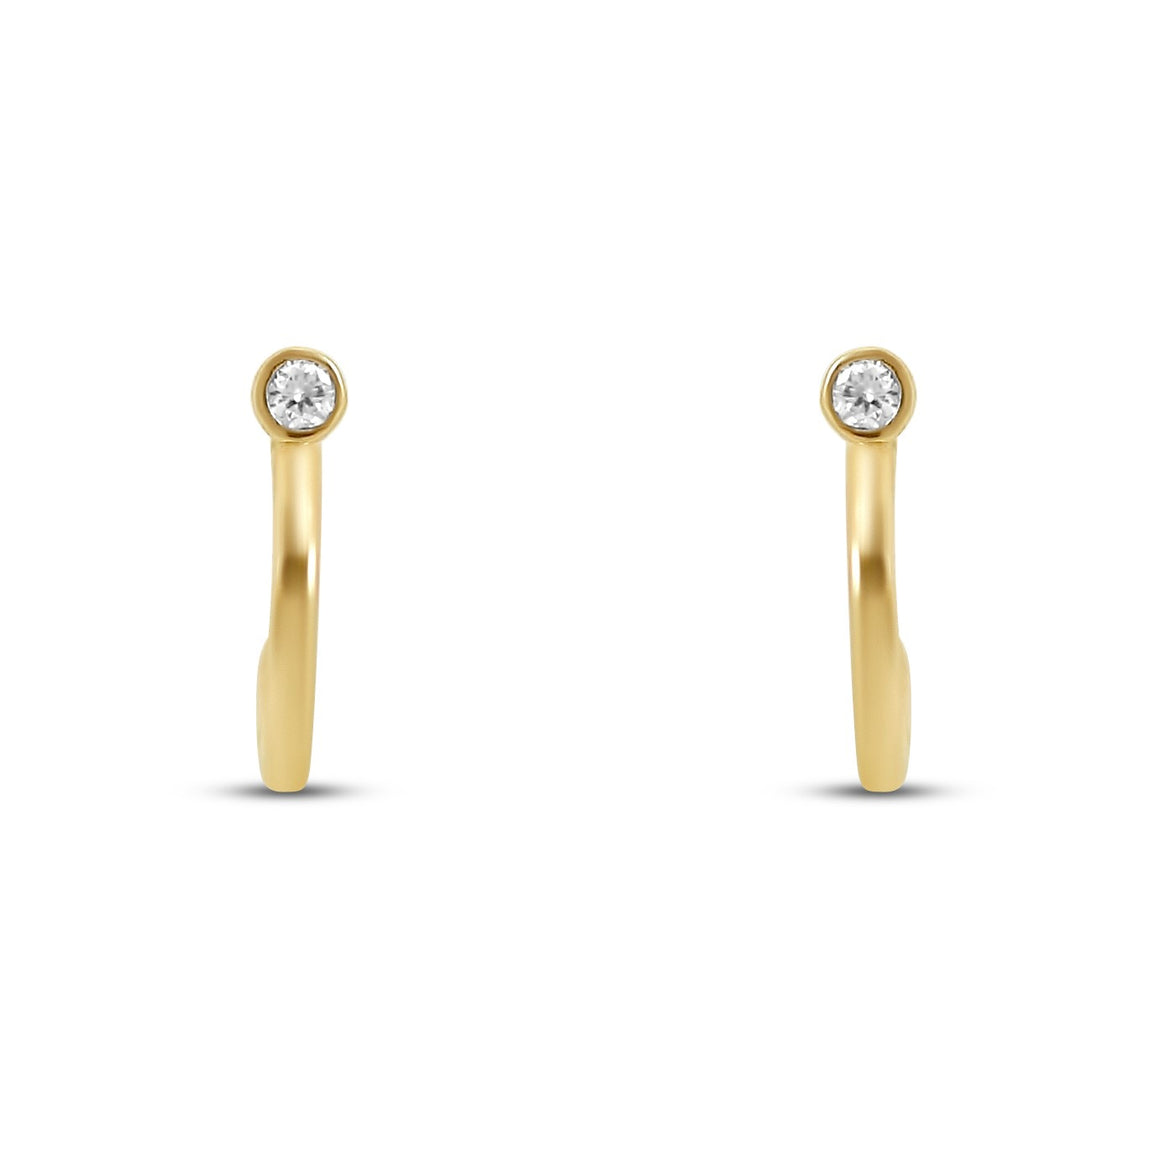 14k yellow gold 2mm hoop earrings with dainty bezel set diamonds